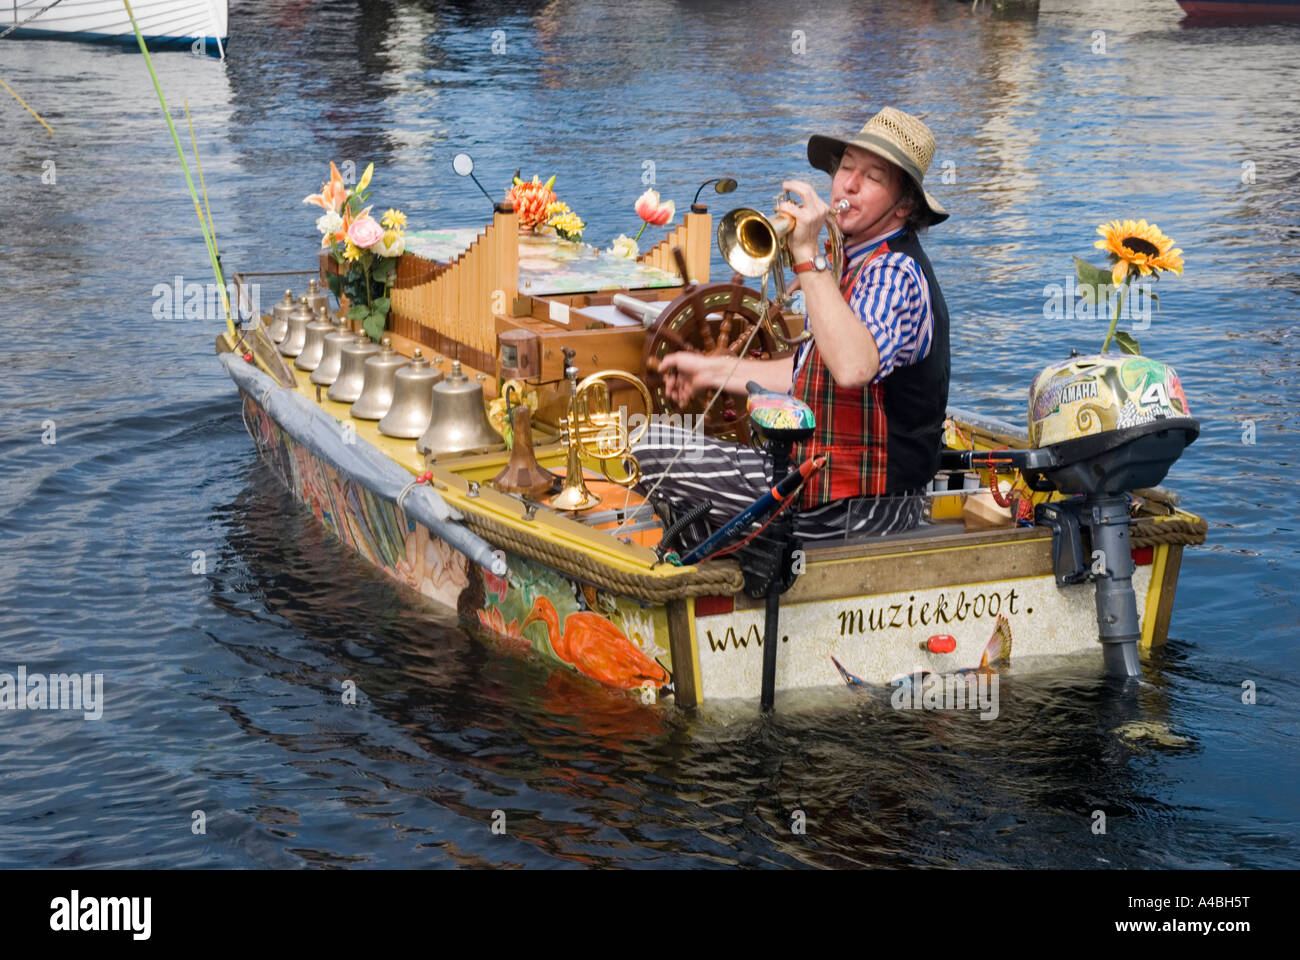 This unusual Dutch music boat Celelia serenades the craft at the Australian Wooden Boat Festival 2007 in Hobart - Stock Image